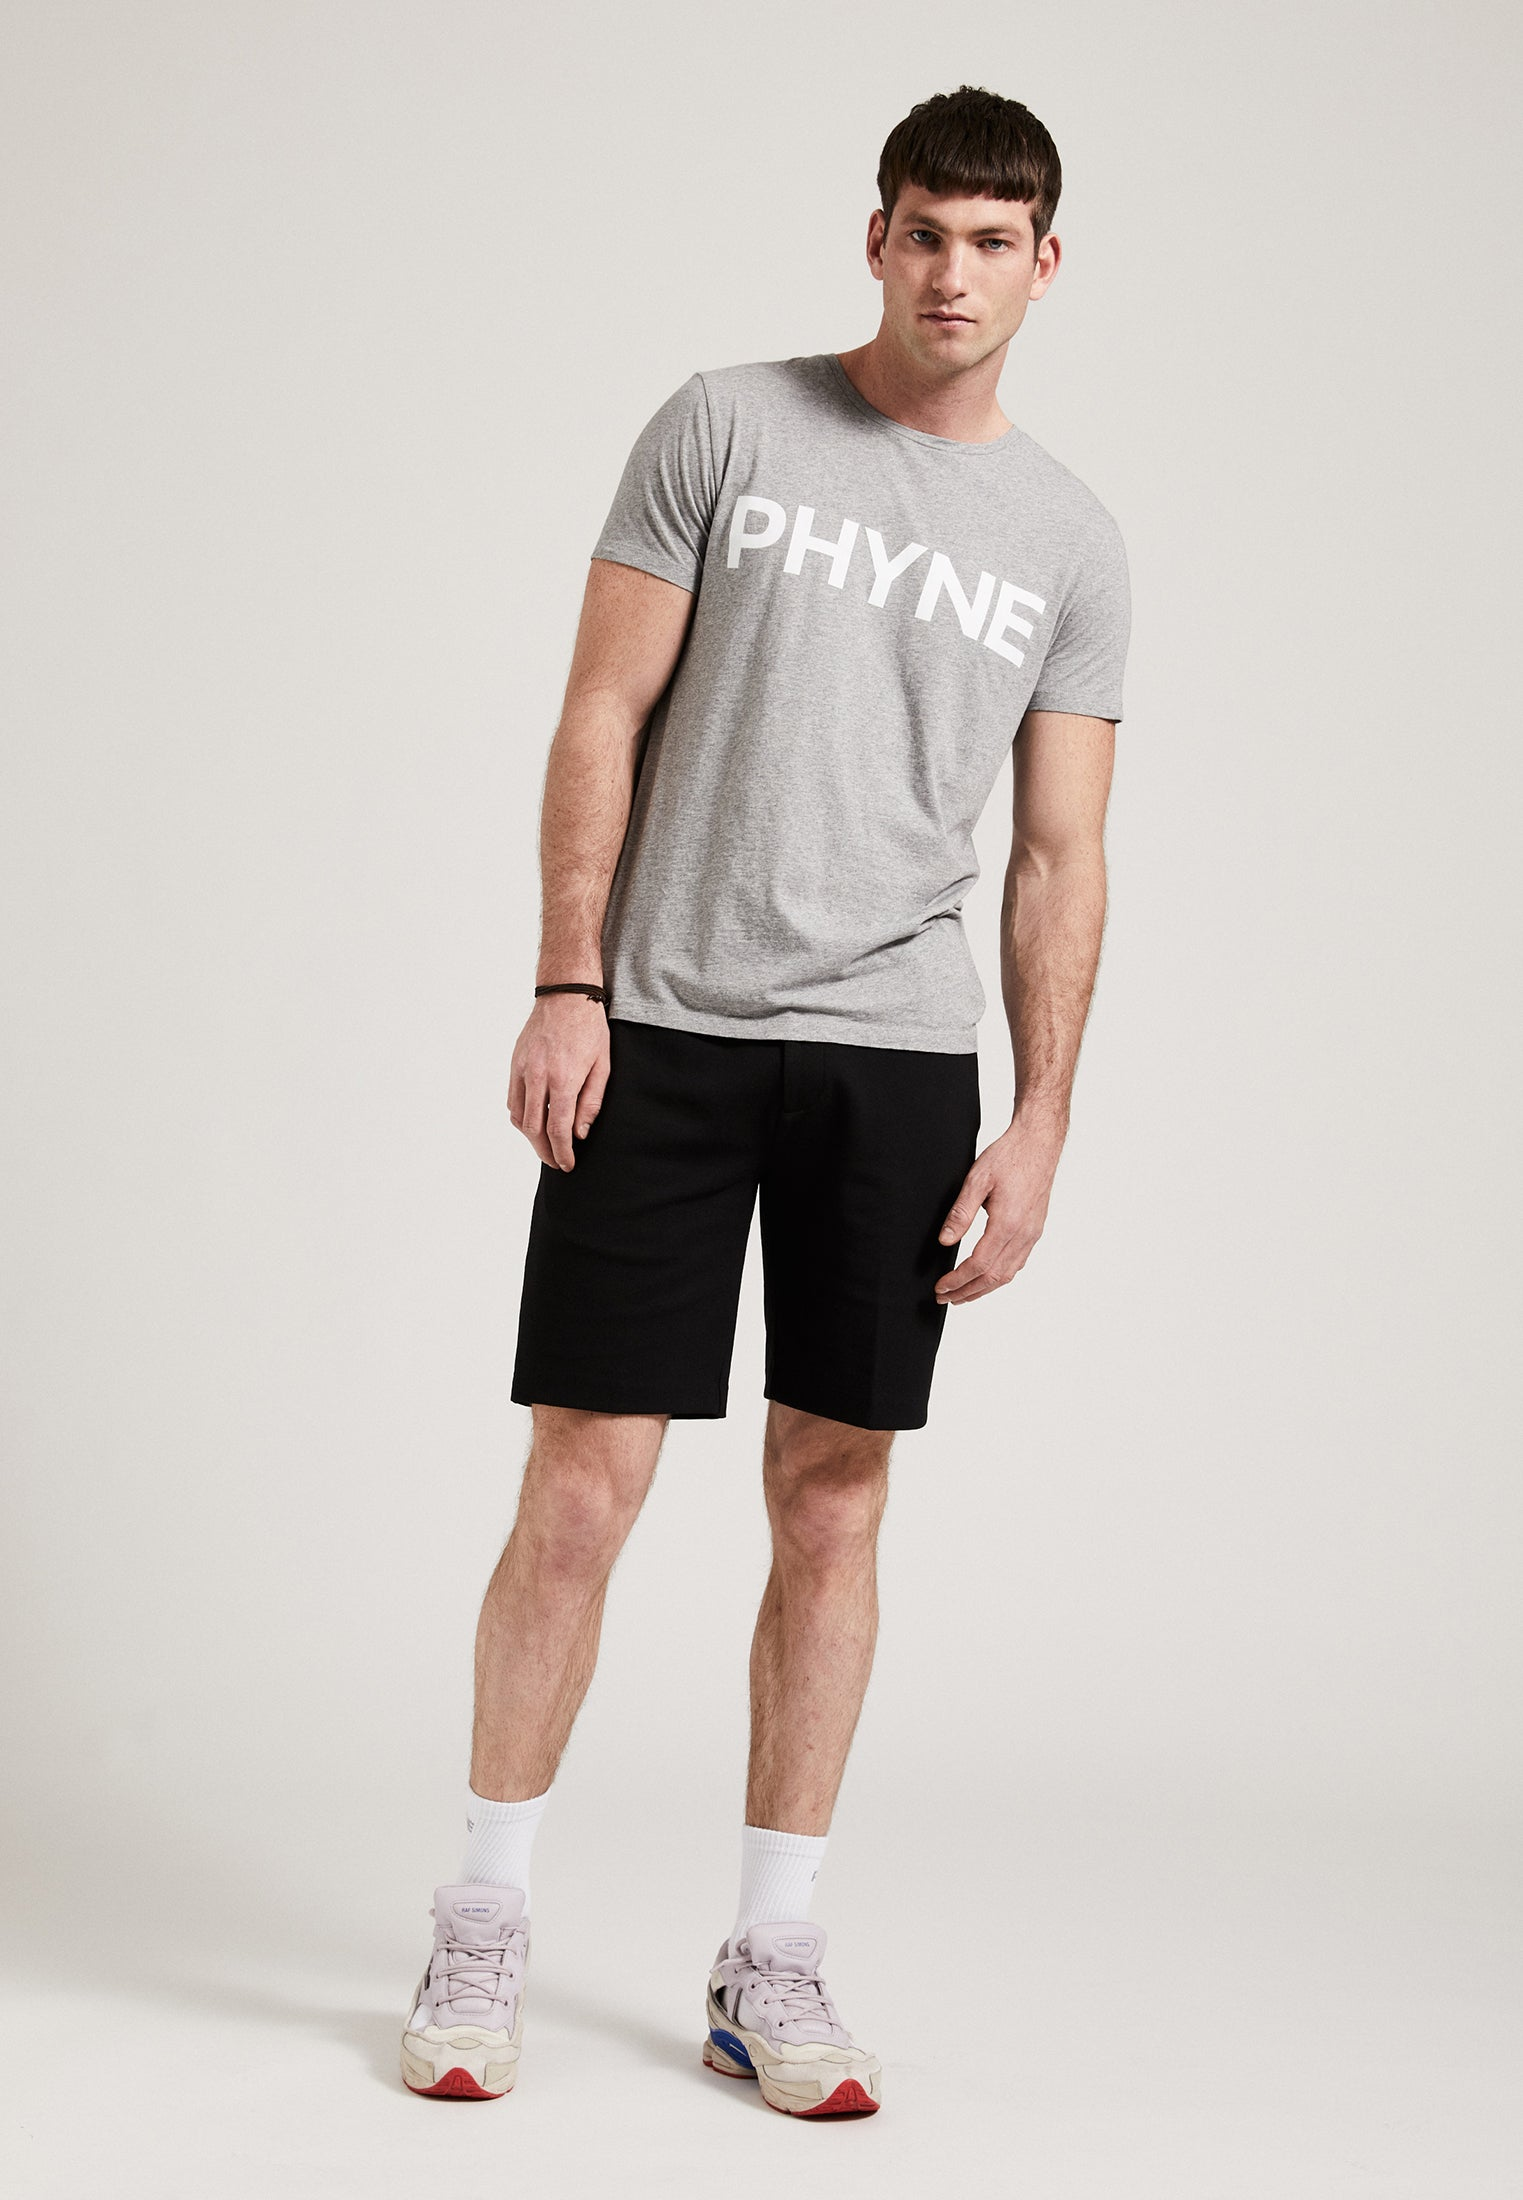 The Phyne Round Neck T-Shirt Grey Melange